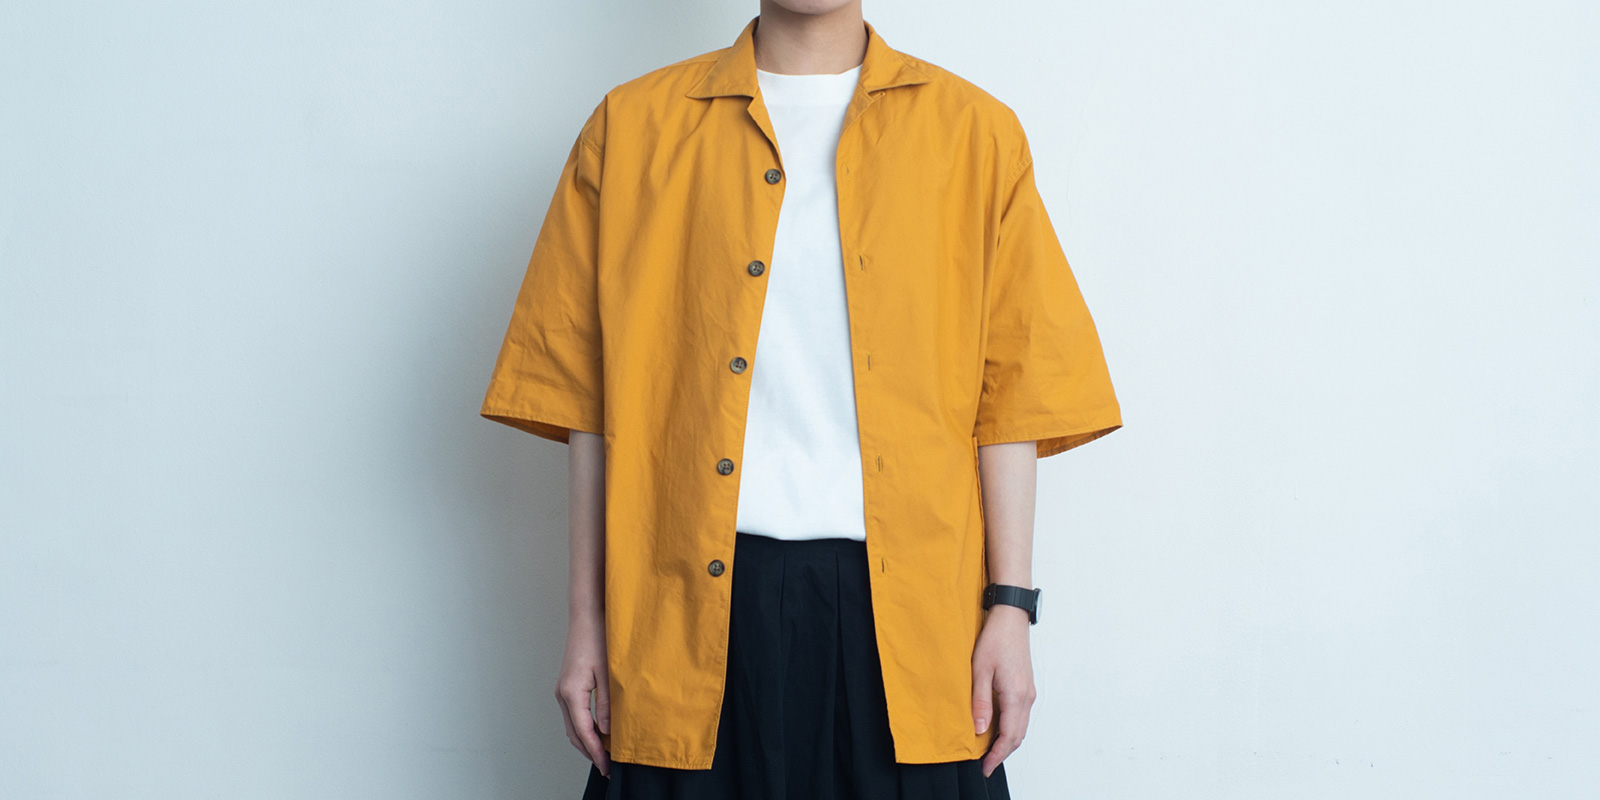 d 207 SIDE POCKET SHIRT・MUSTARD・M